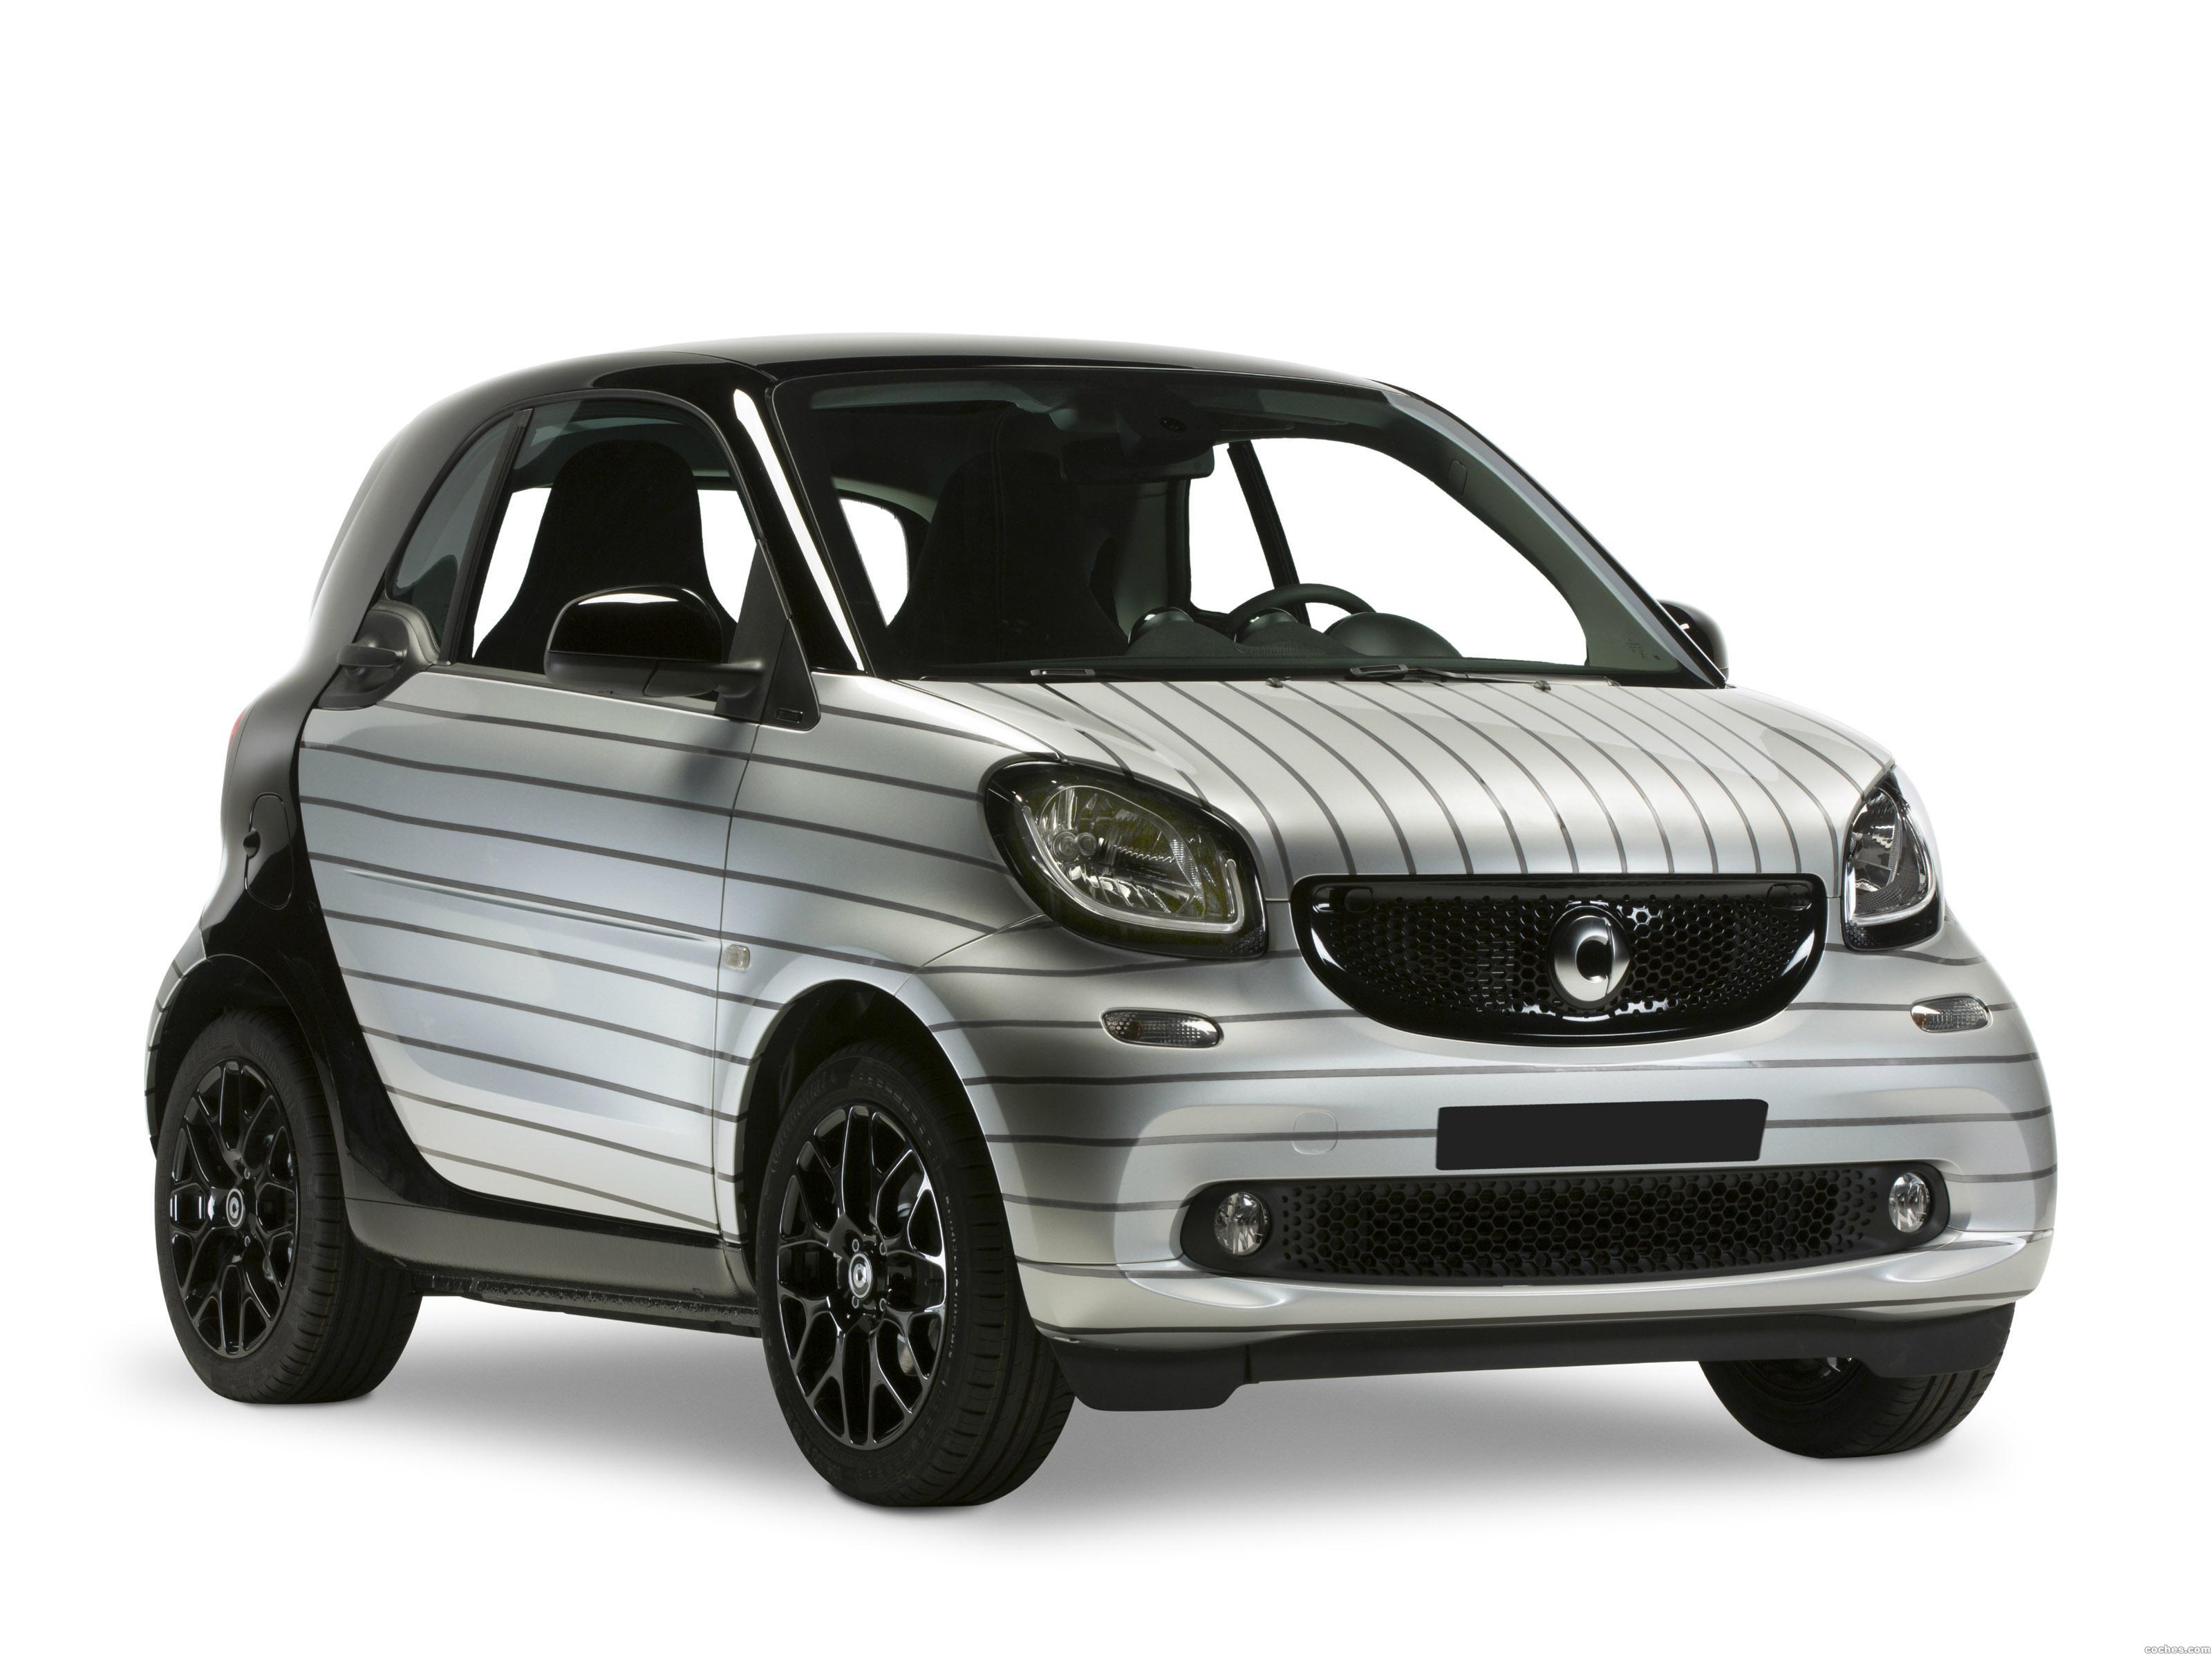 smart_fortwo-pinstripe-by-garage-italia-customs-c453-2016_r8.jpg